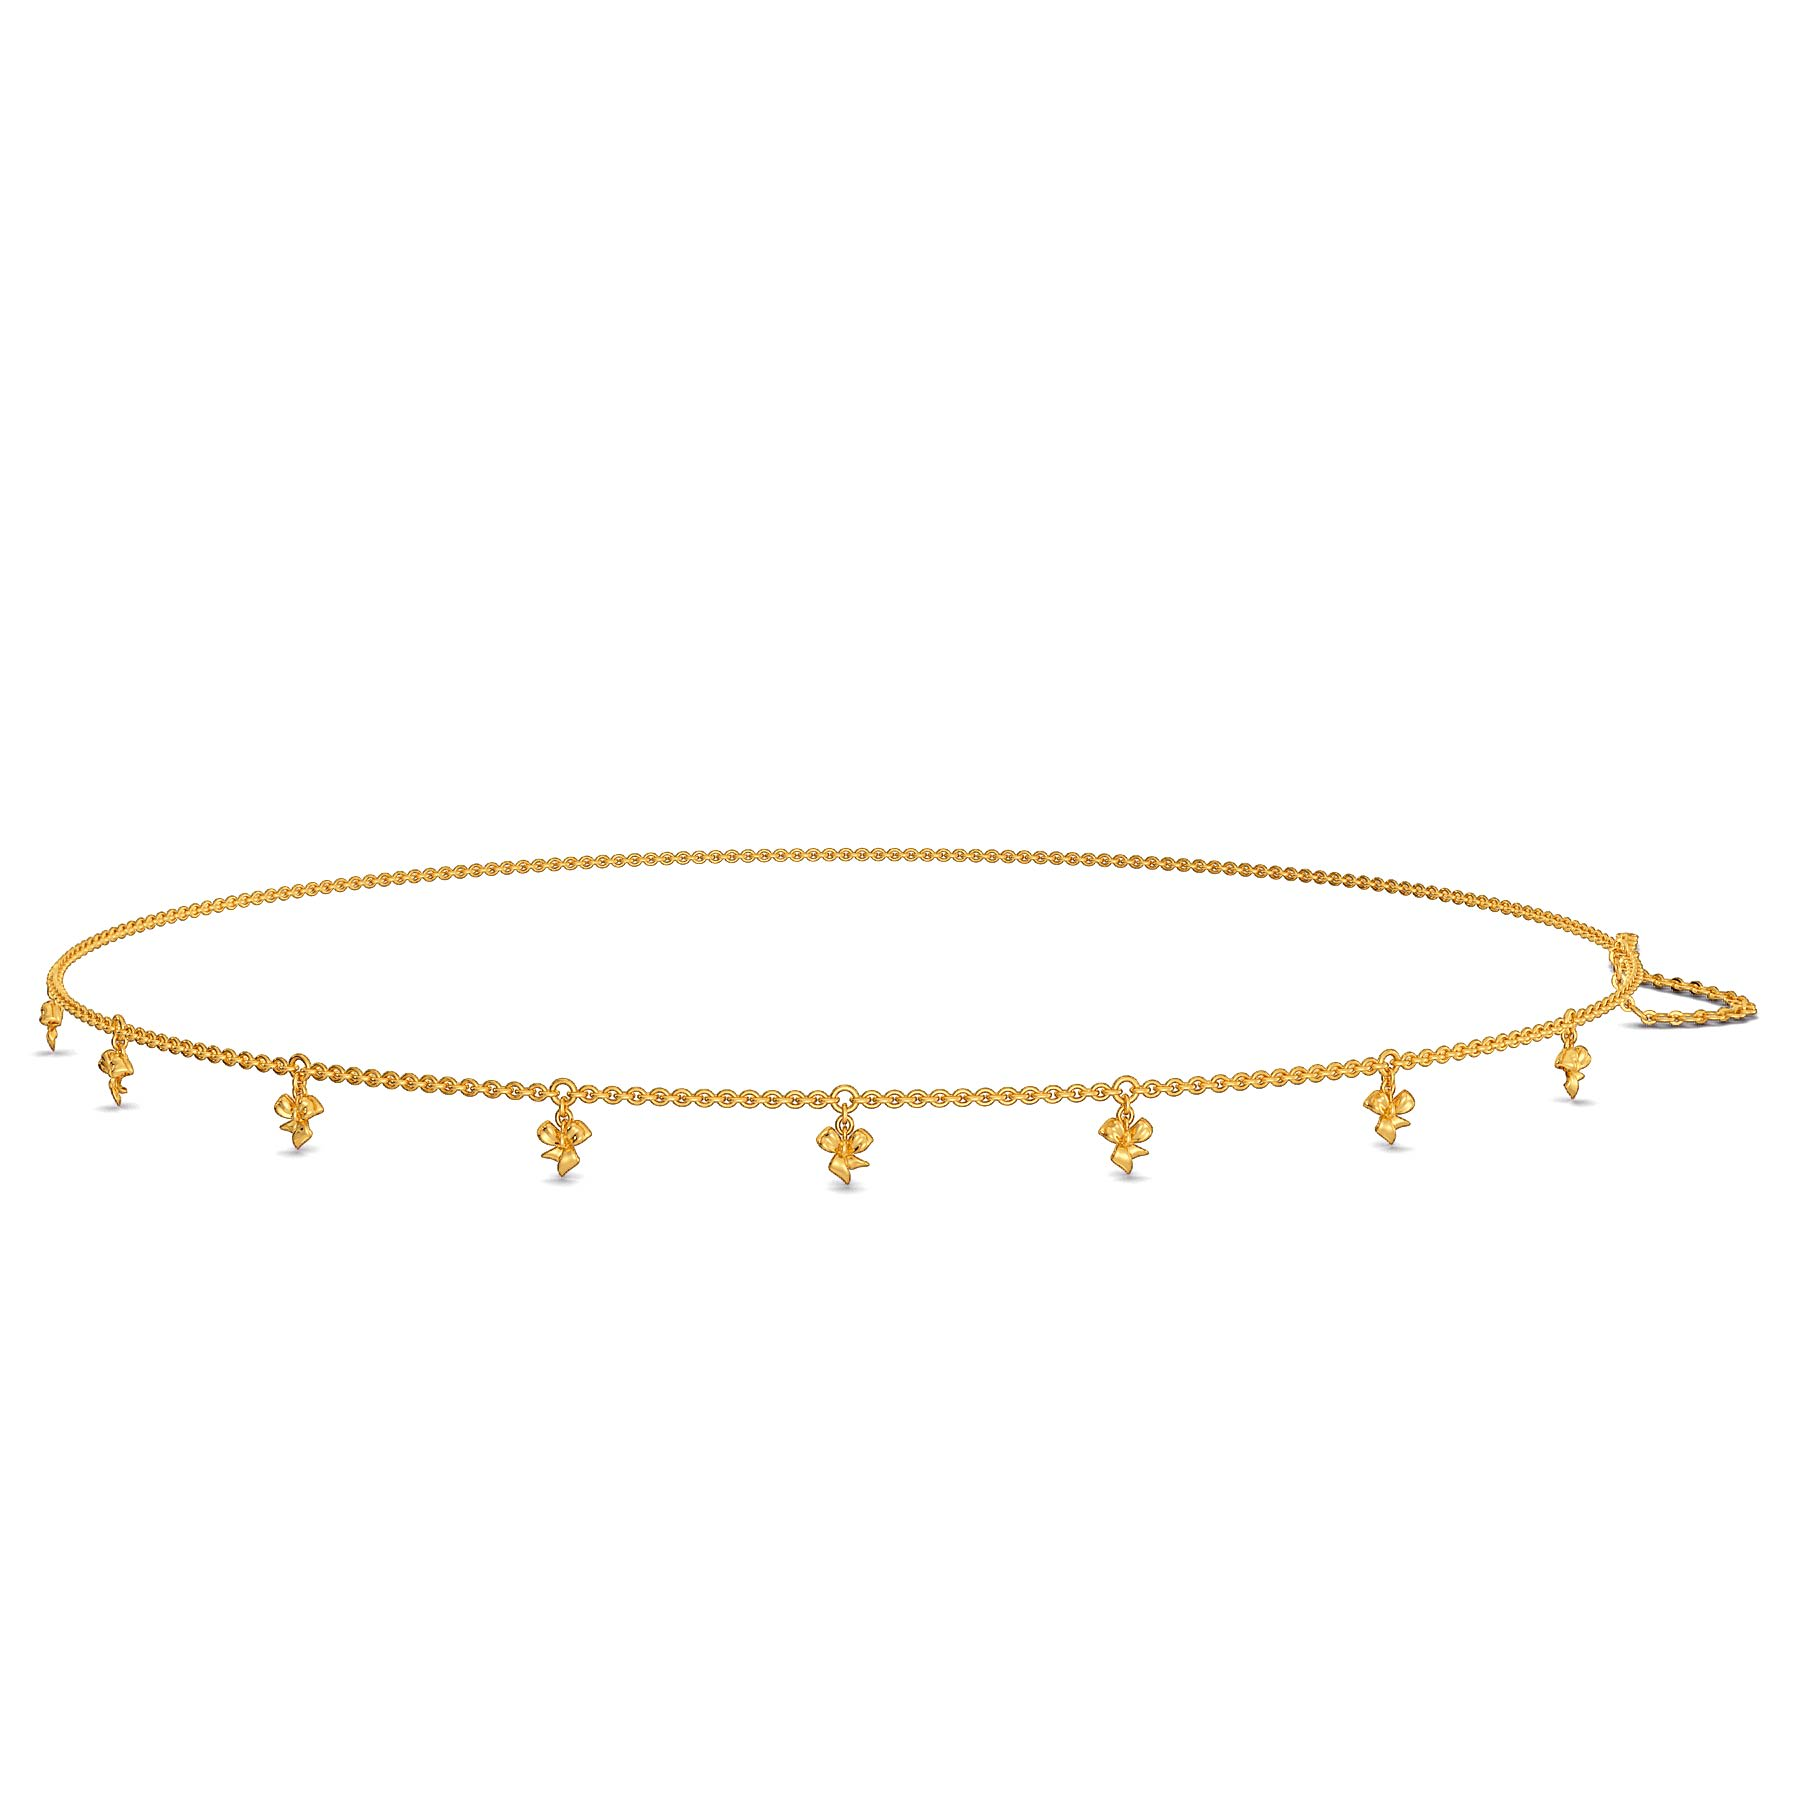 Bow Bistro Gold Waist Chains